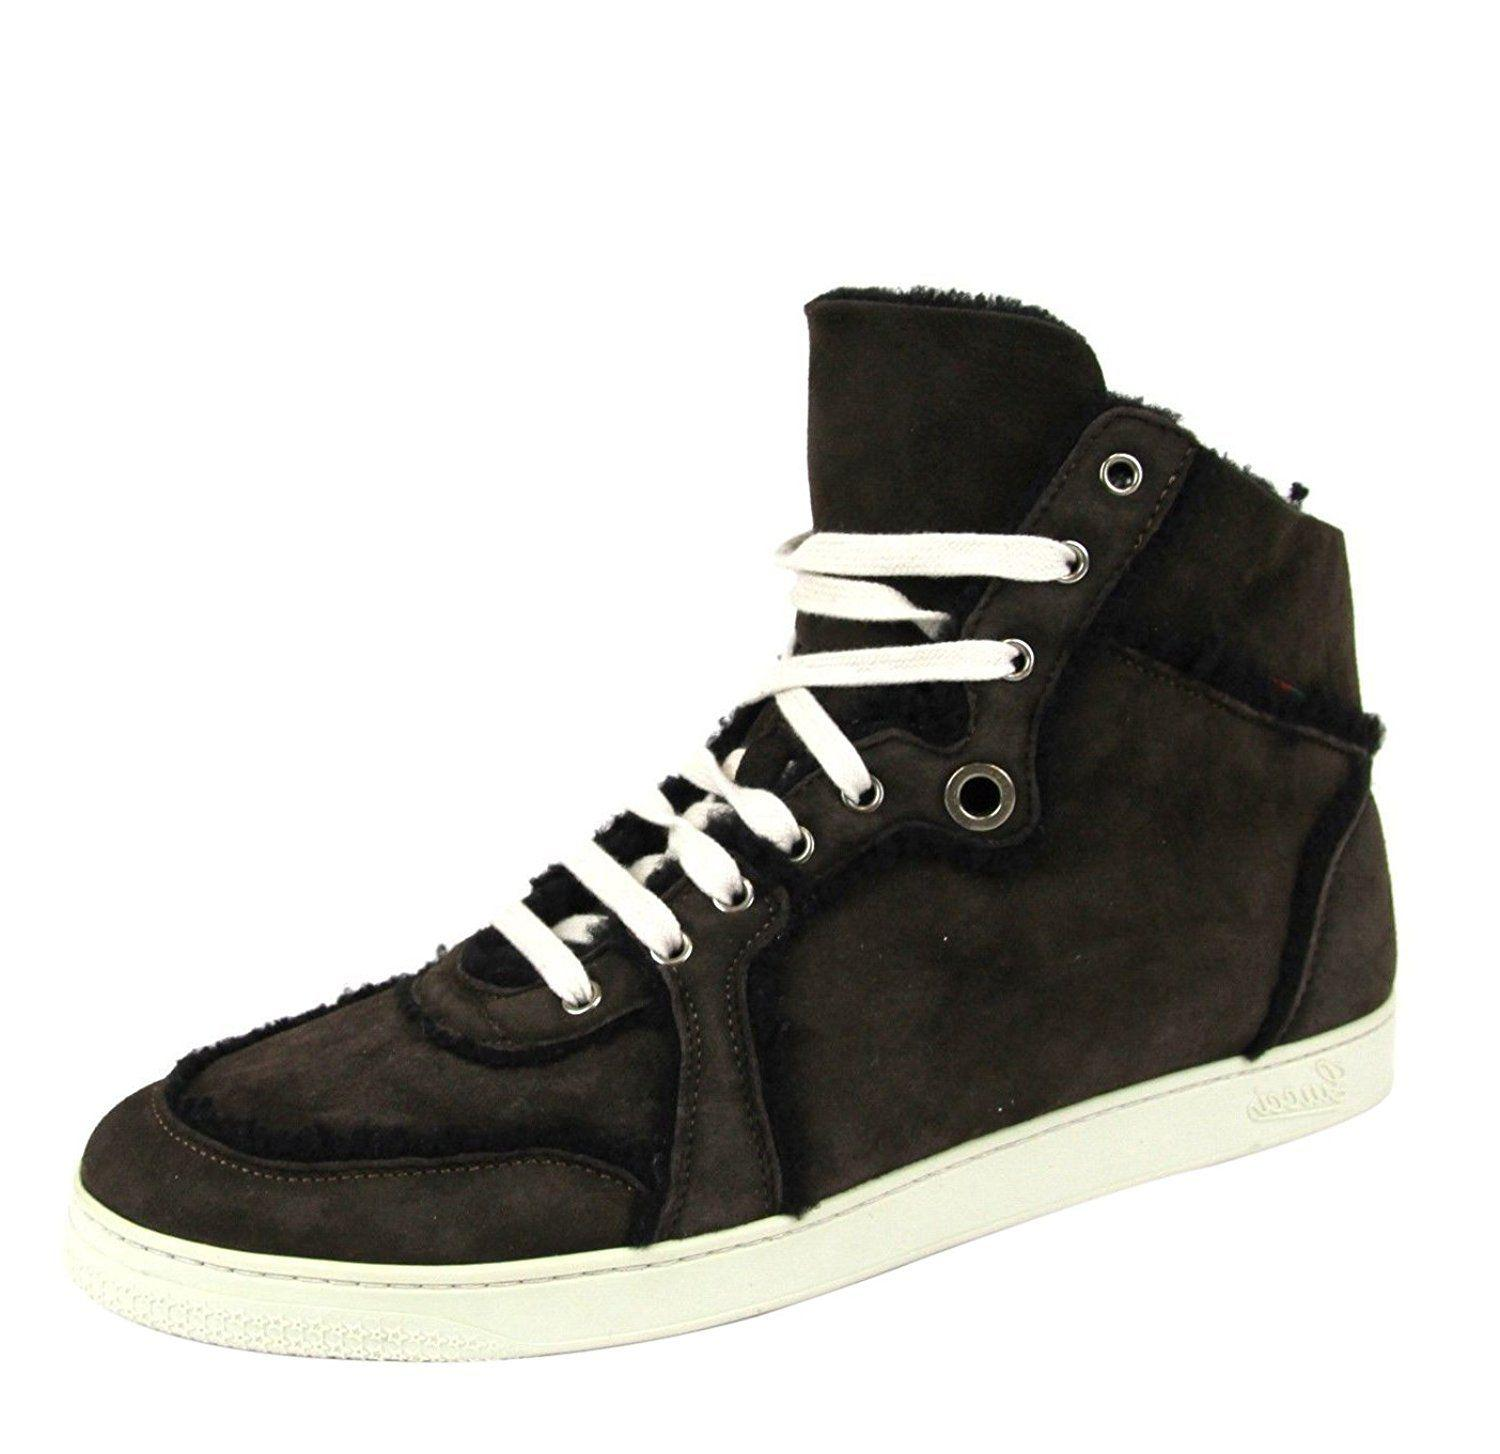 e86ad057a Lyst - Gucci Men's Navy Shearling High-top Sneaker 309408 4009 in ...